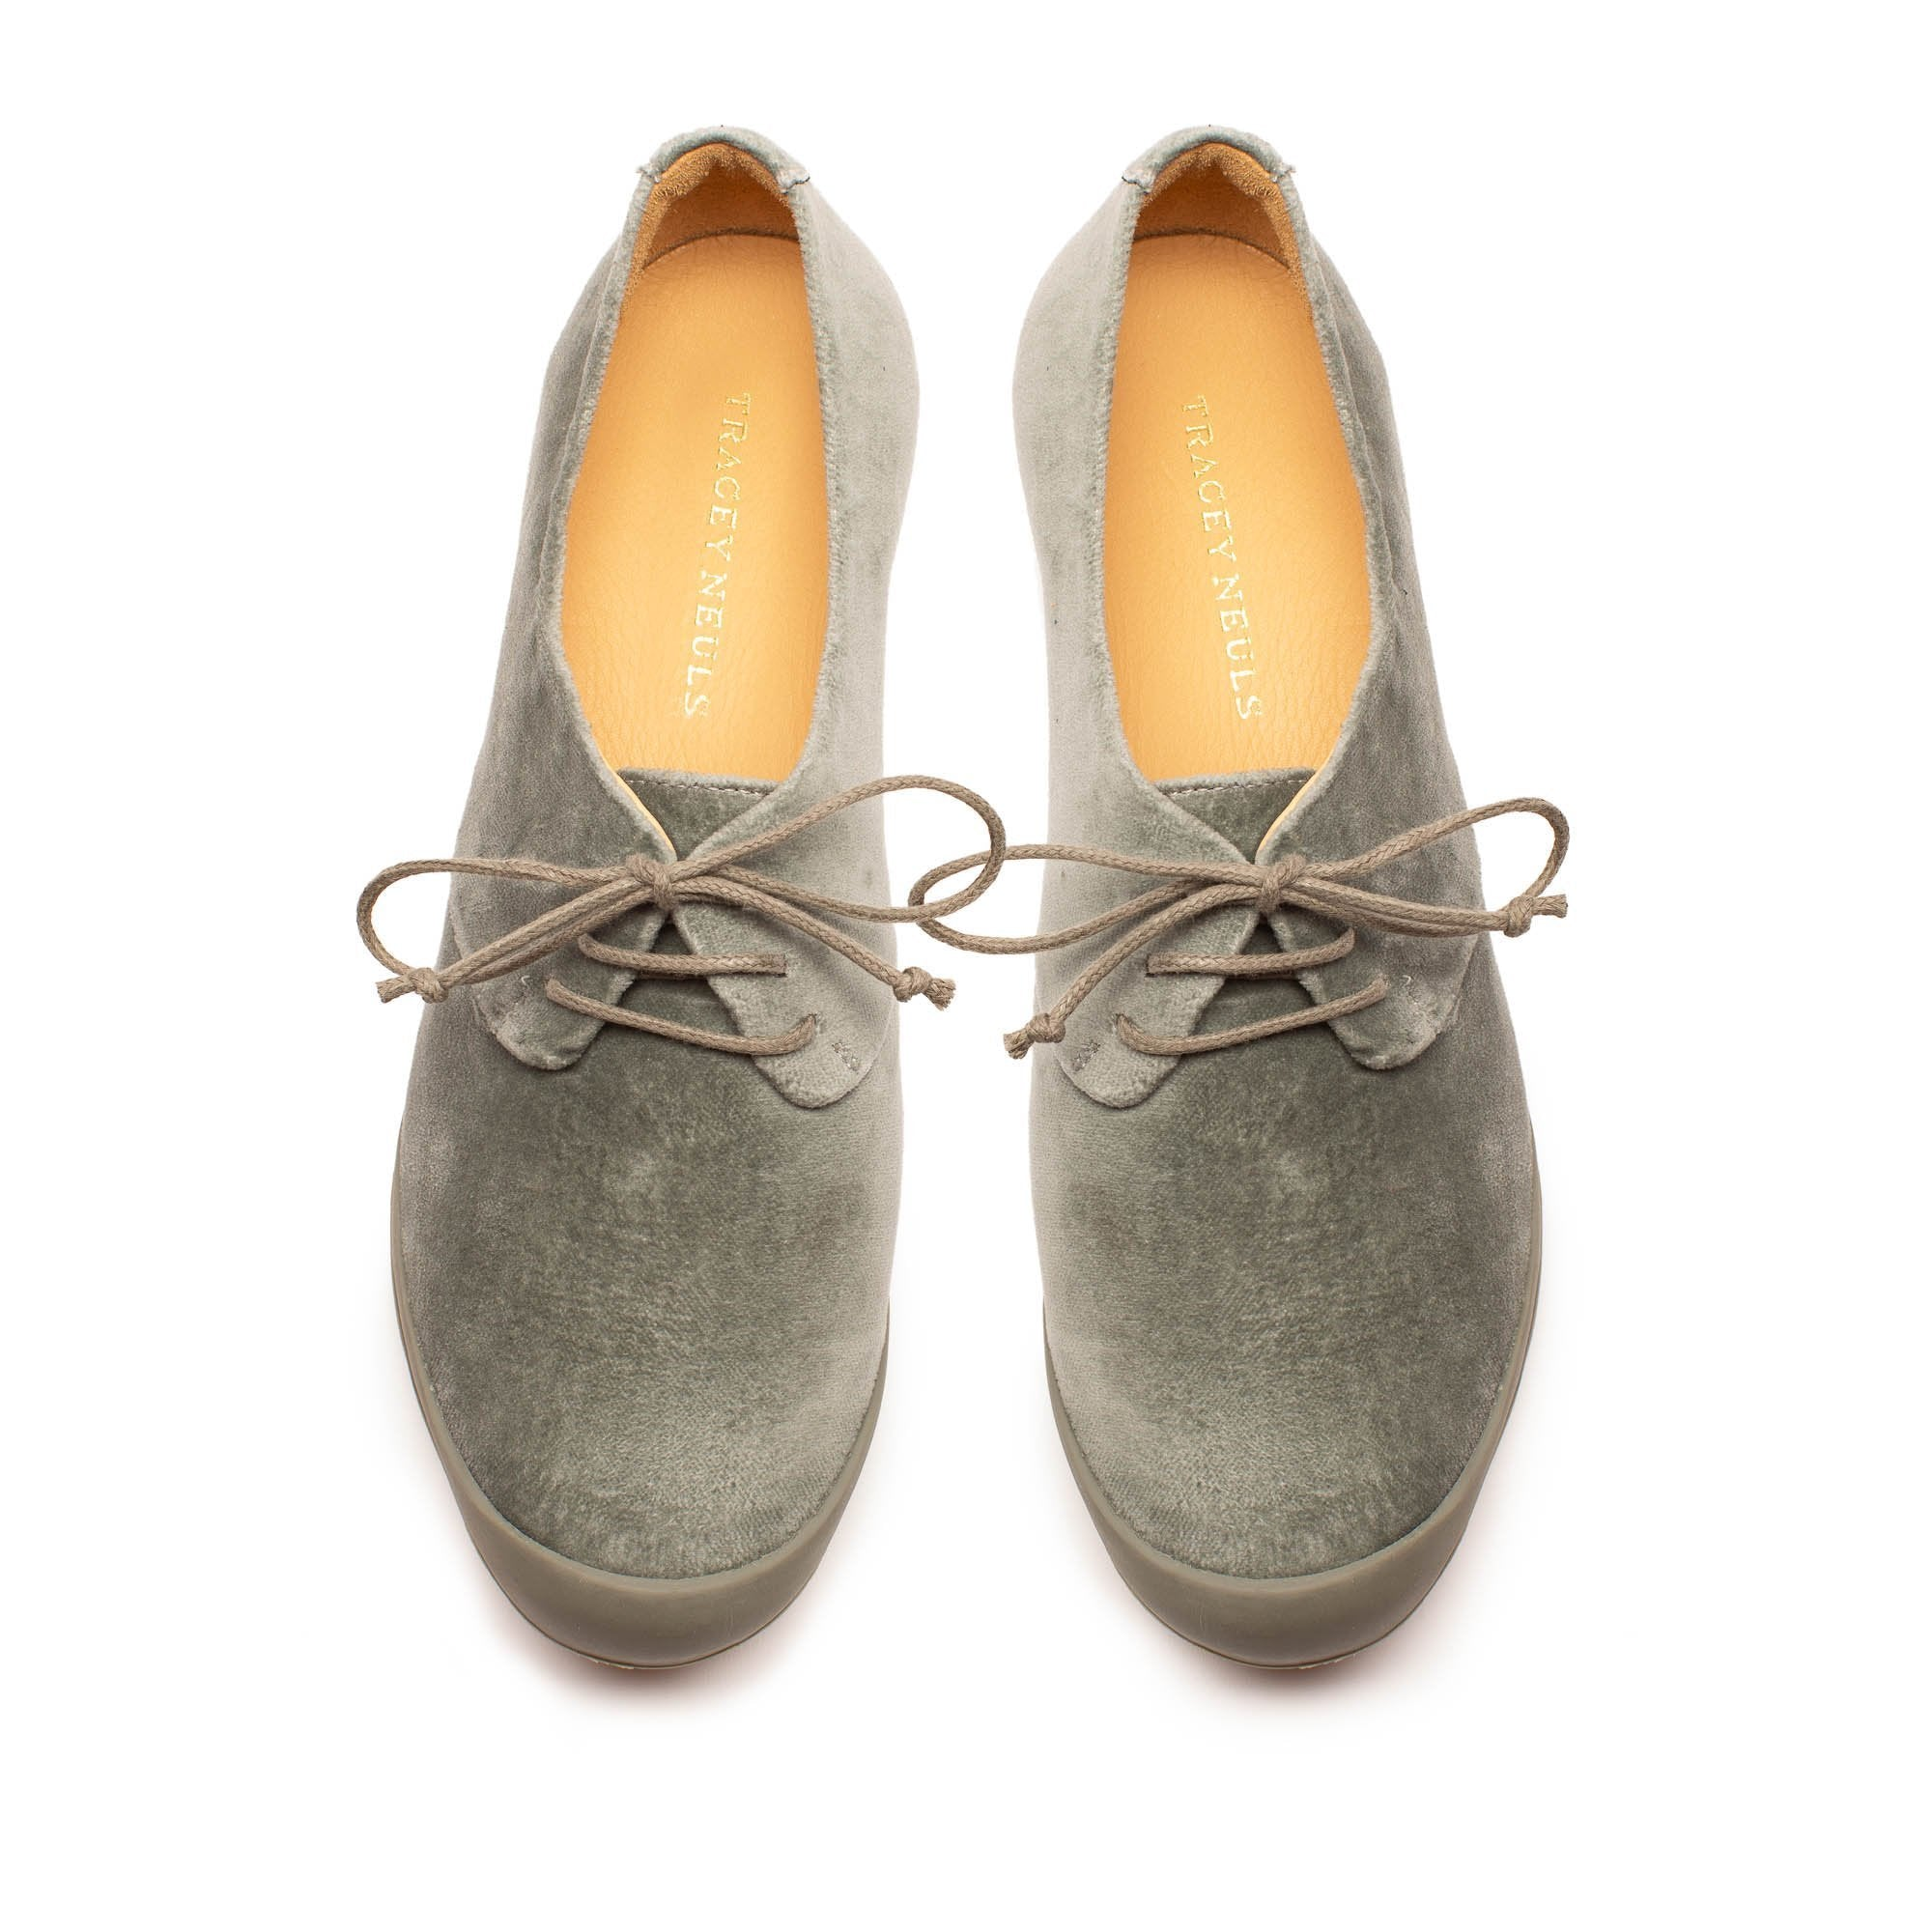 A pair of grey velvet brogues for women by London designer Tracey Neuls